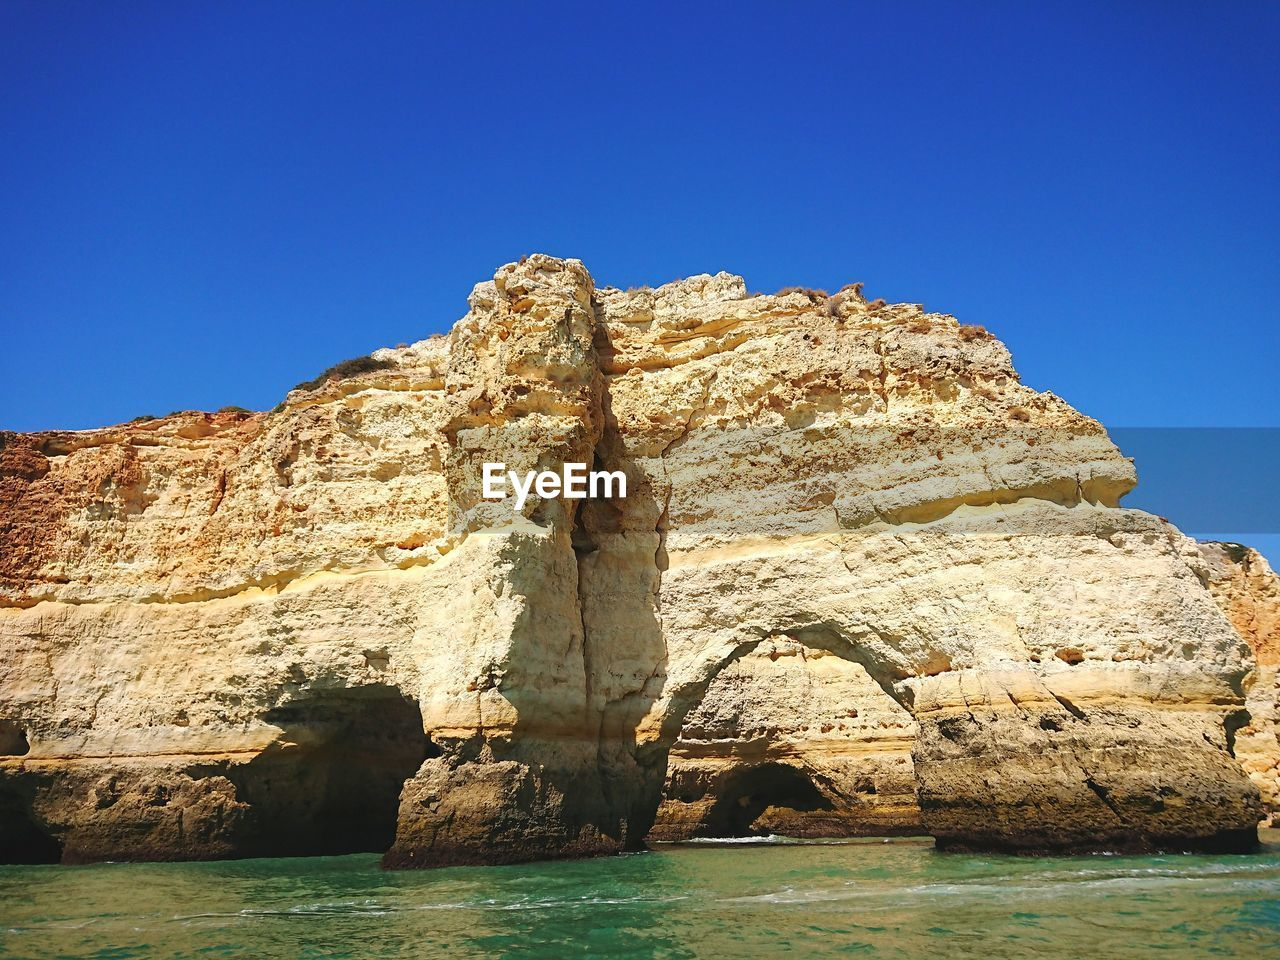 ROCK FORMATION BY SEA AGAINST CLEAR SKY